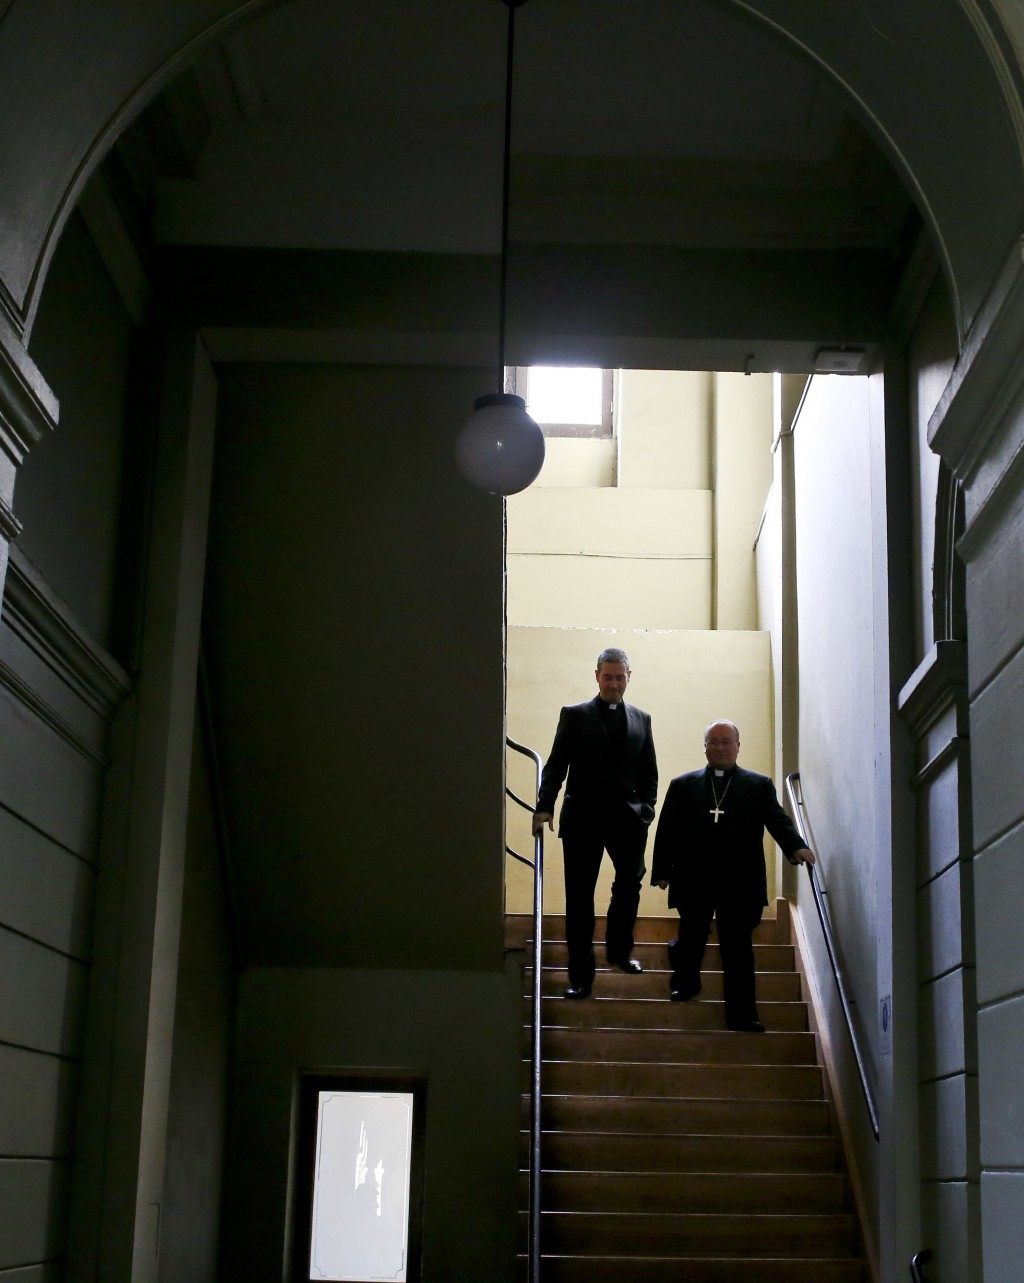 Archbishop Charles Scicluna, right, and Spanish Monsignor Jordi Bertomeuof, walk down a set of stairs prior a press conference at the Catholic Univers